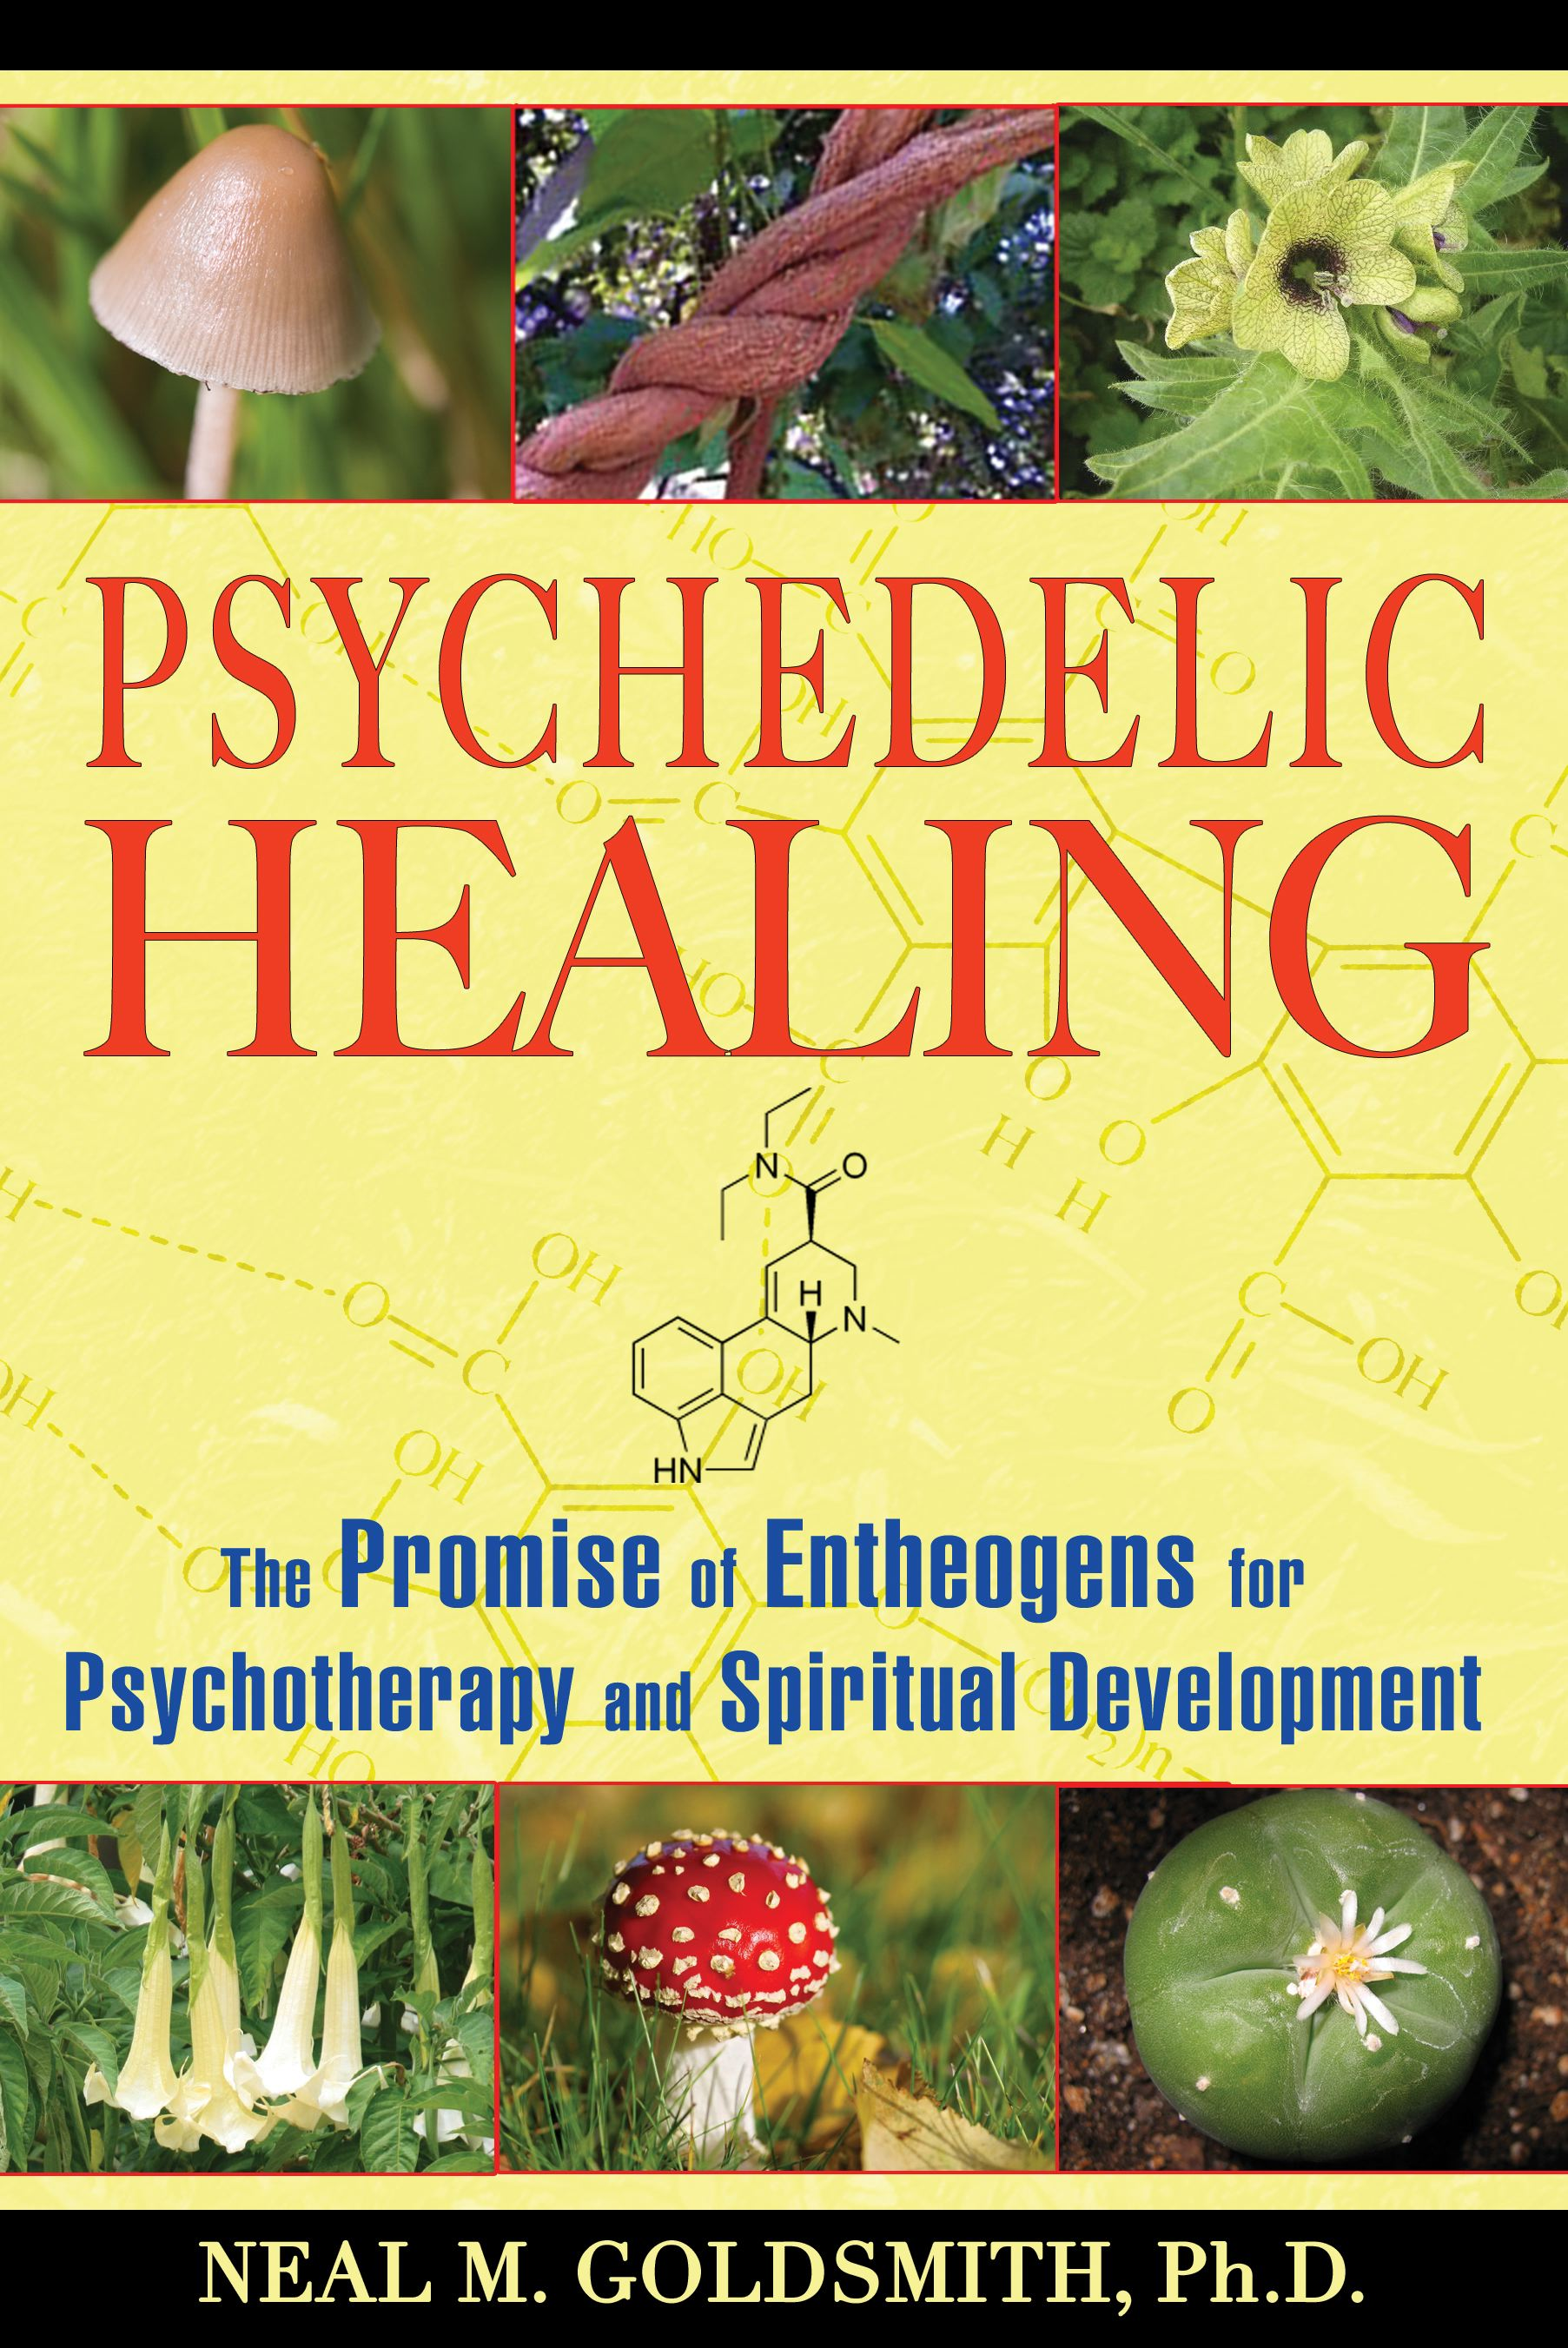 Psychedelic-healing-9781594772504_hr